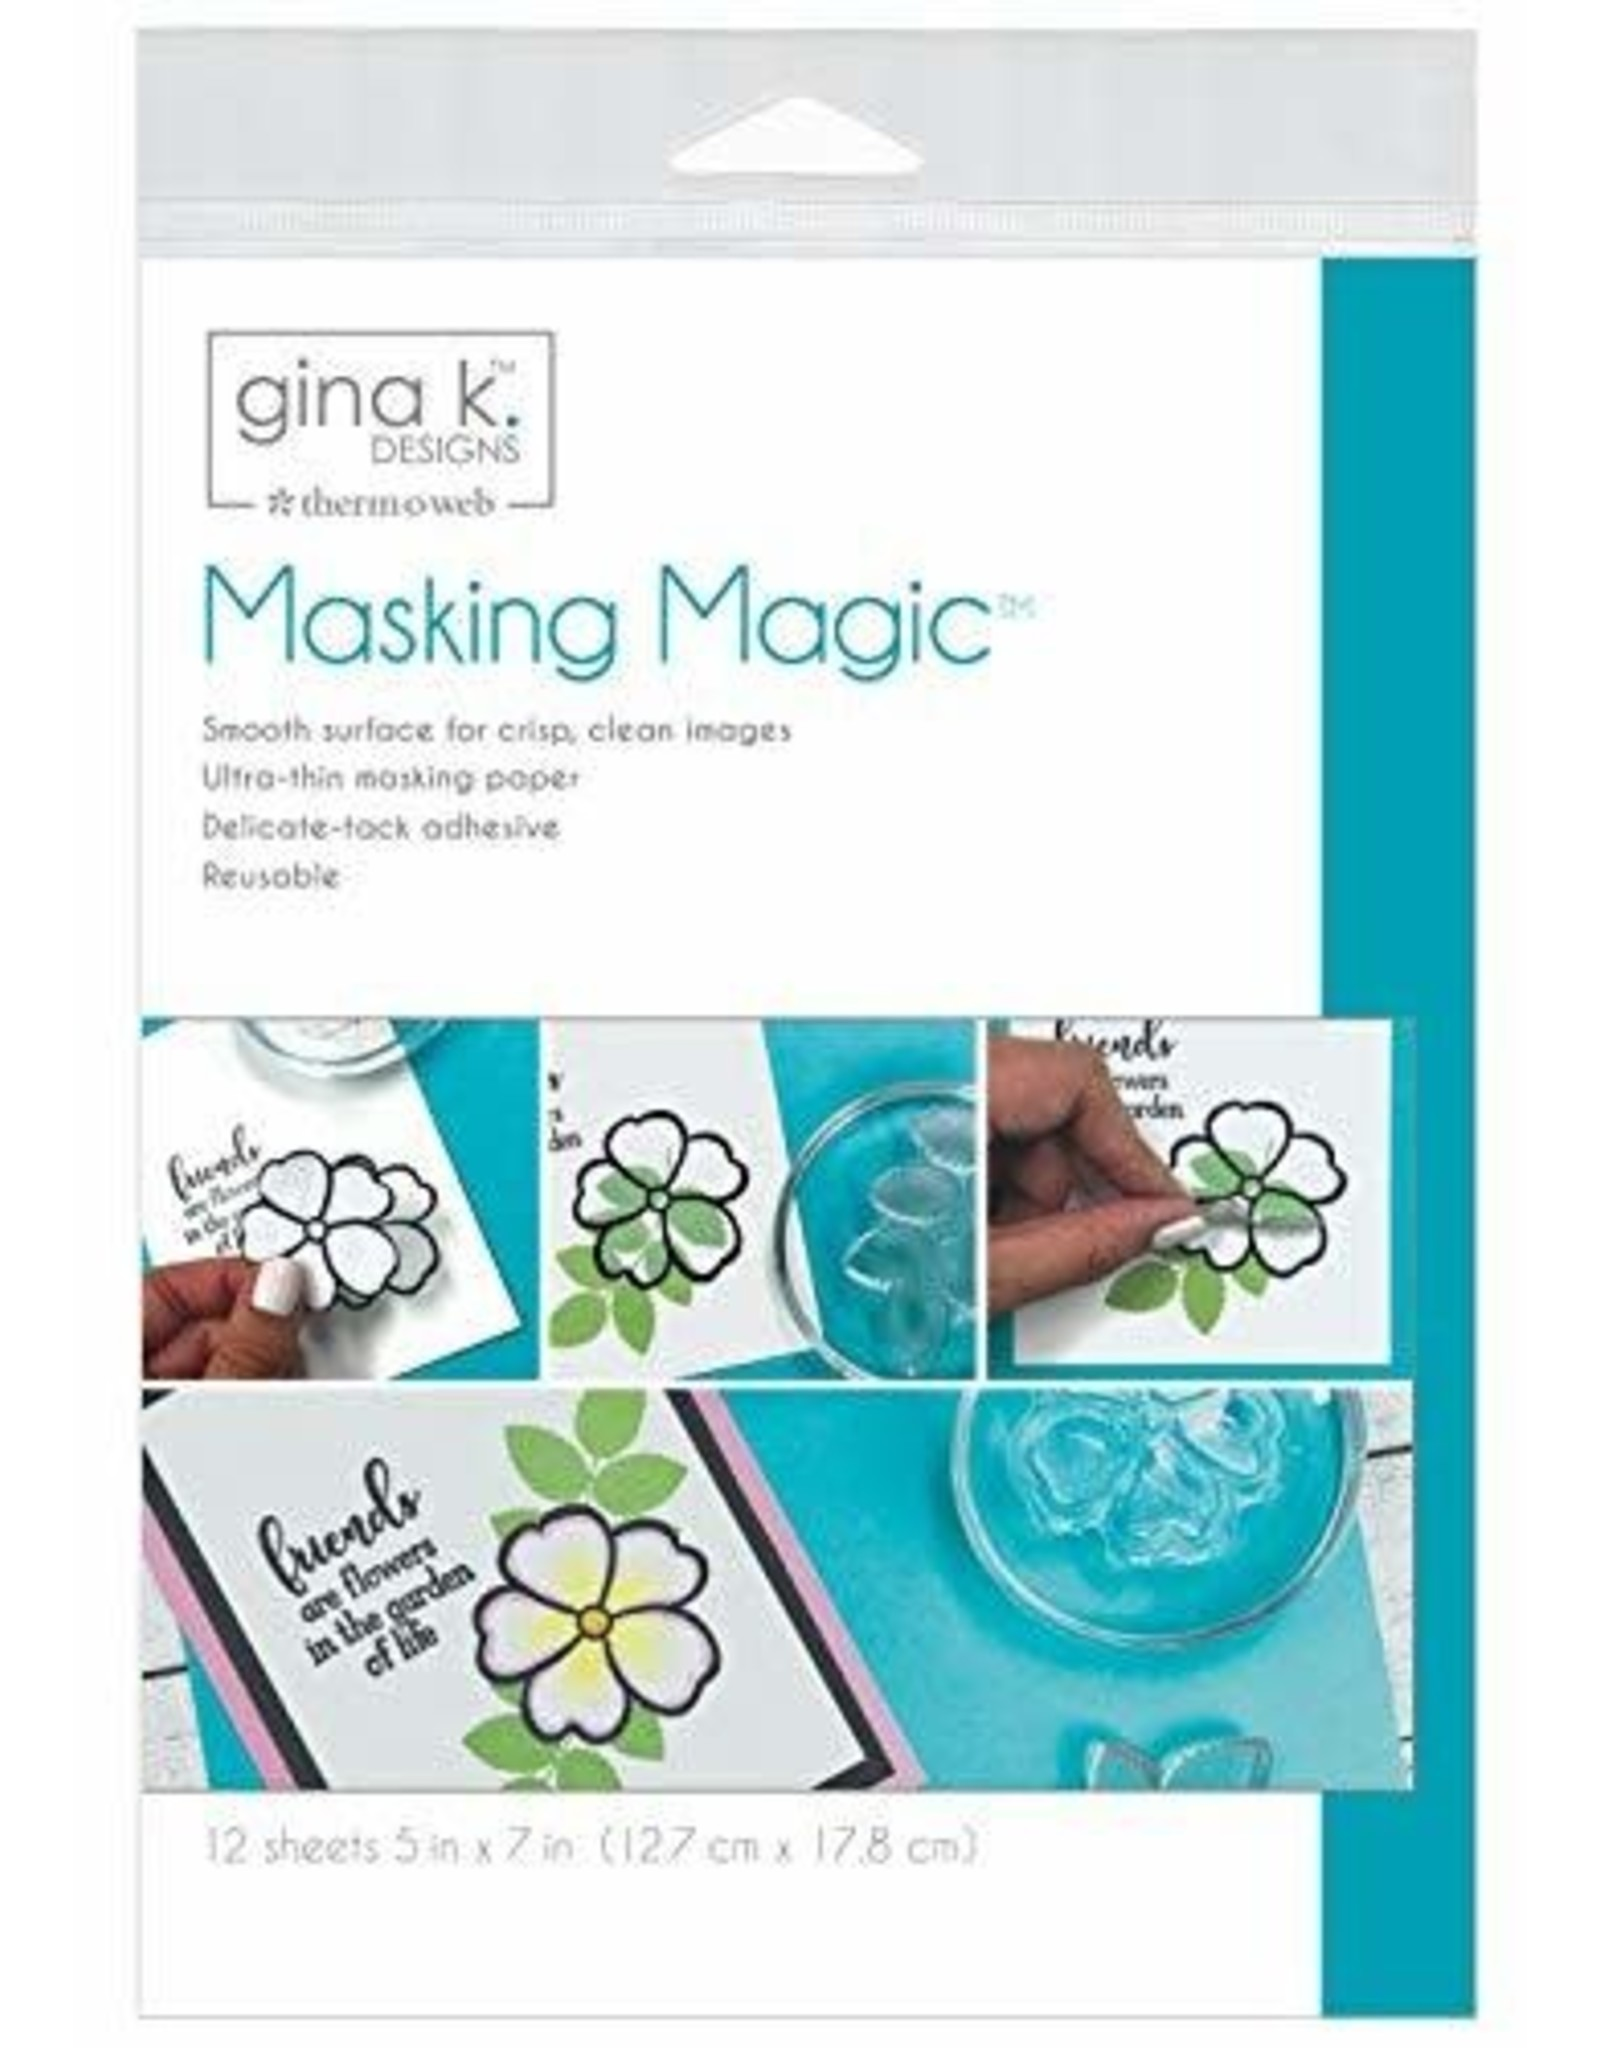 Gina K Designs LLC Gina K. Designs - Masking Magic